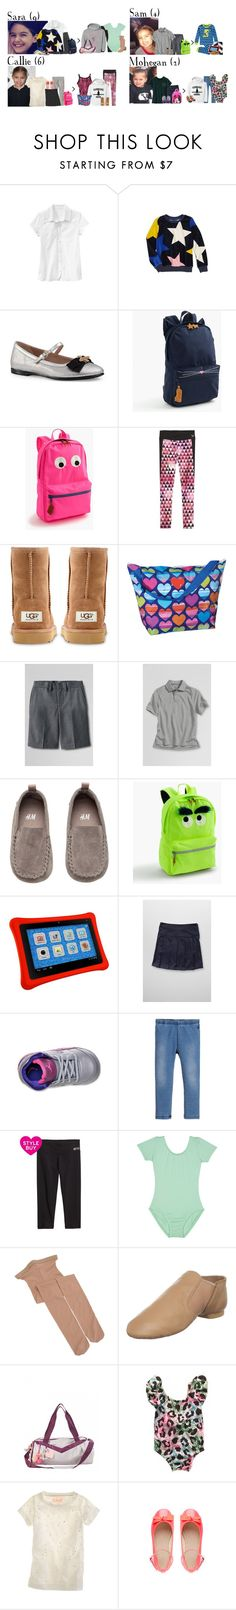 """""""Tuesday // School, Dog Park, Errands & Activities // 11/29/16"""" by graywolf145 ❤ liked on Polyvore featuring J.Crew, Gap, UGG Australia, Lands' End, Petit Lem, Retrò, Joules, Capezio and GrayWolfFamily"""